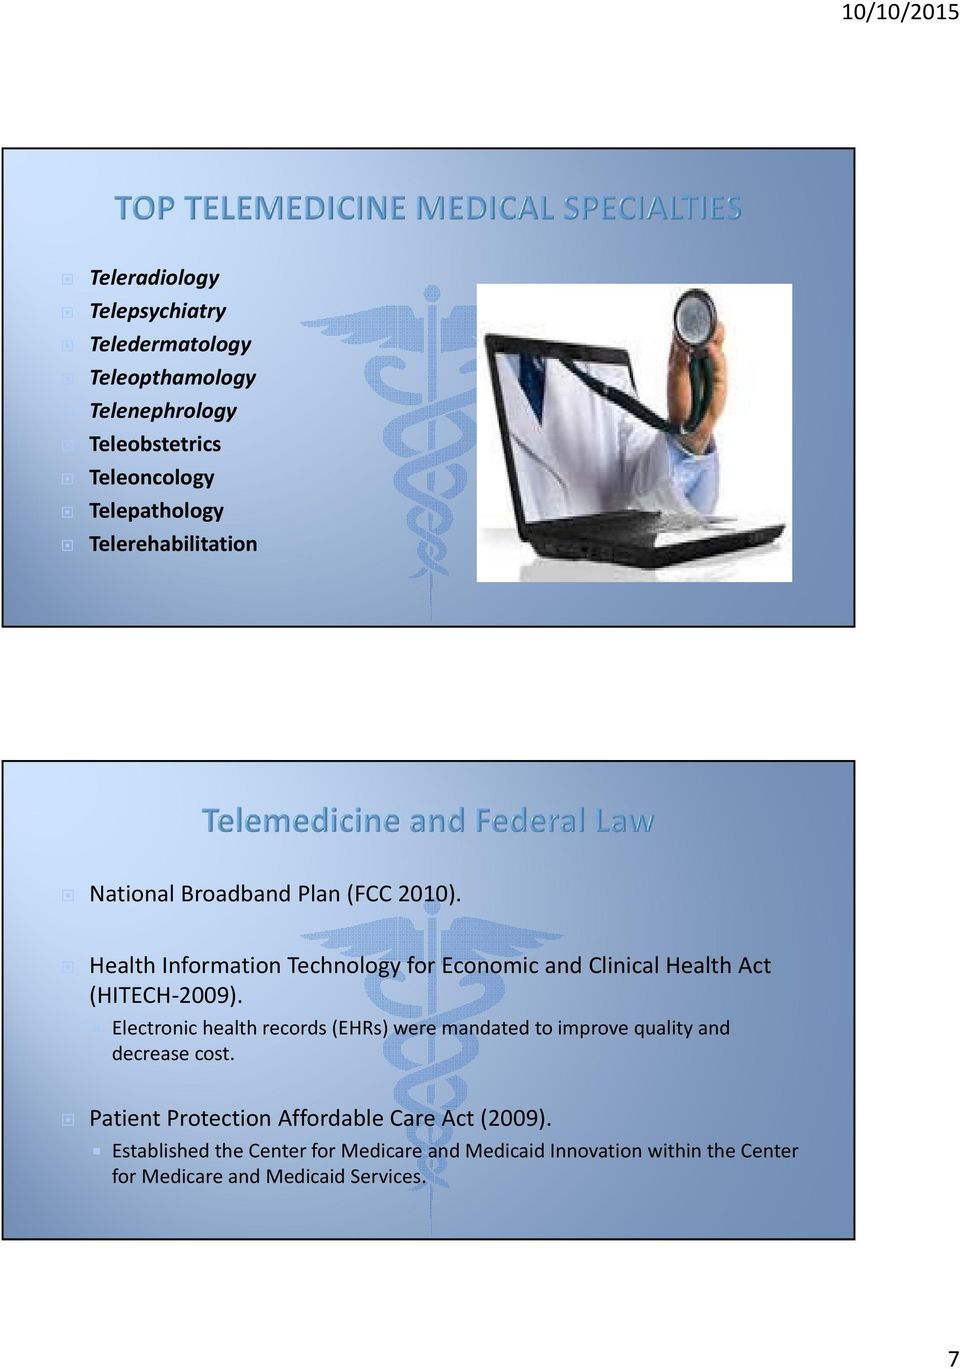 Health Information Technology for Economic and Clinical Health Act (HITECH 2009).